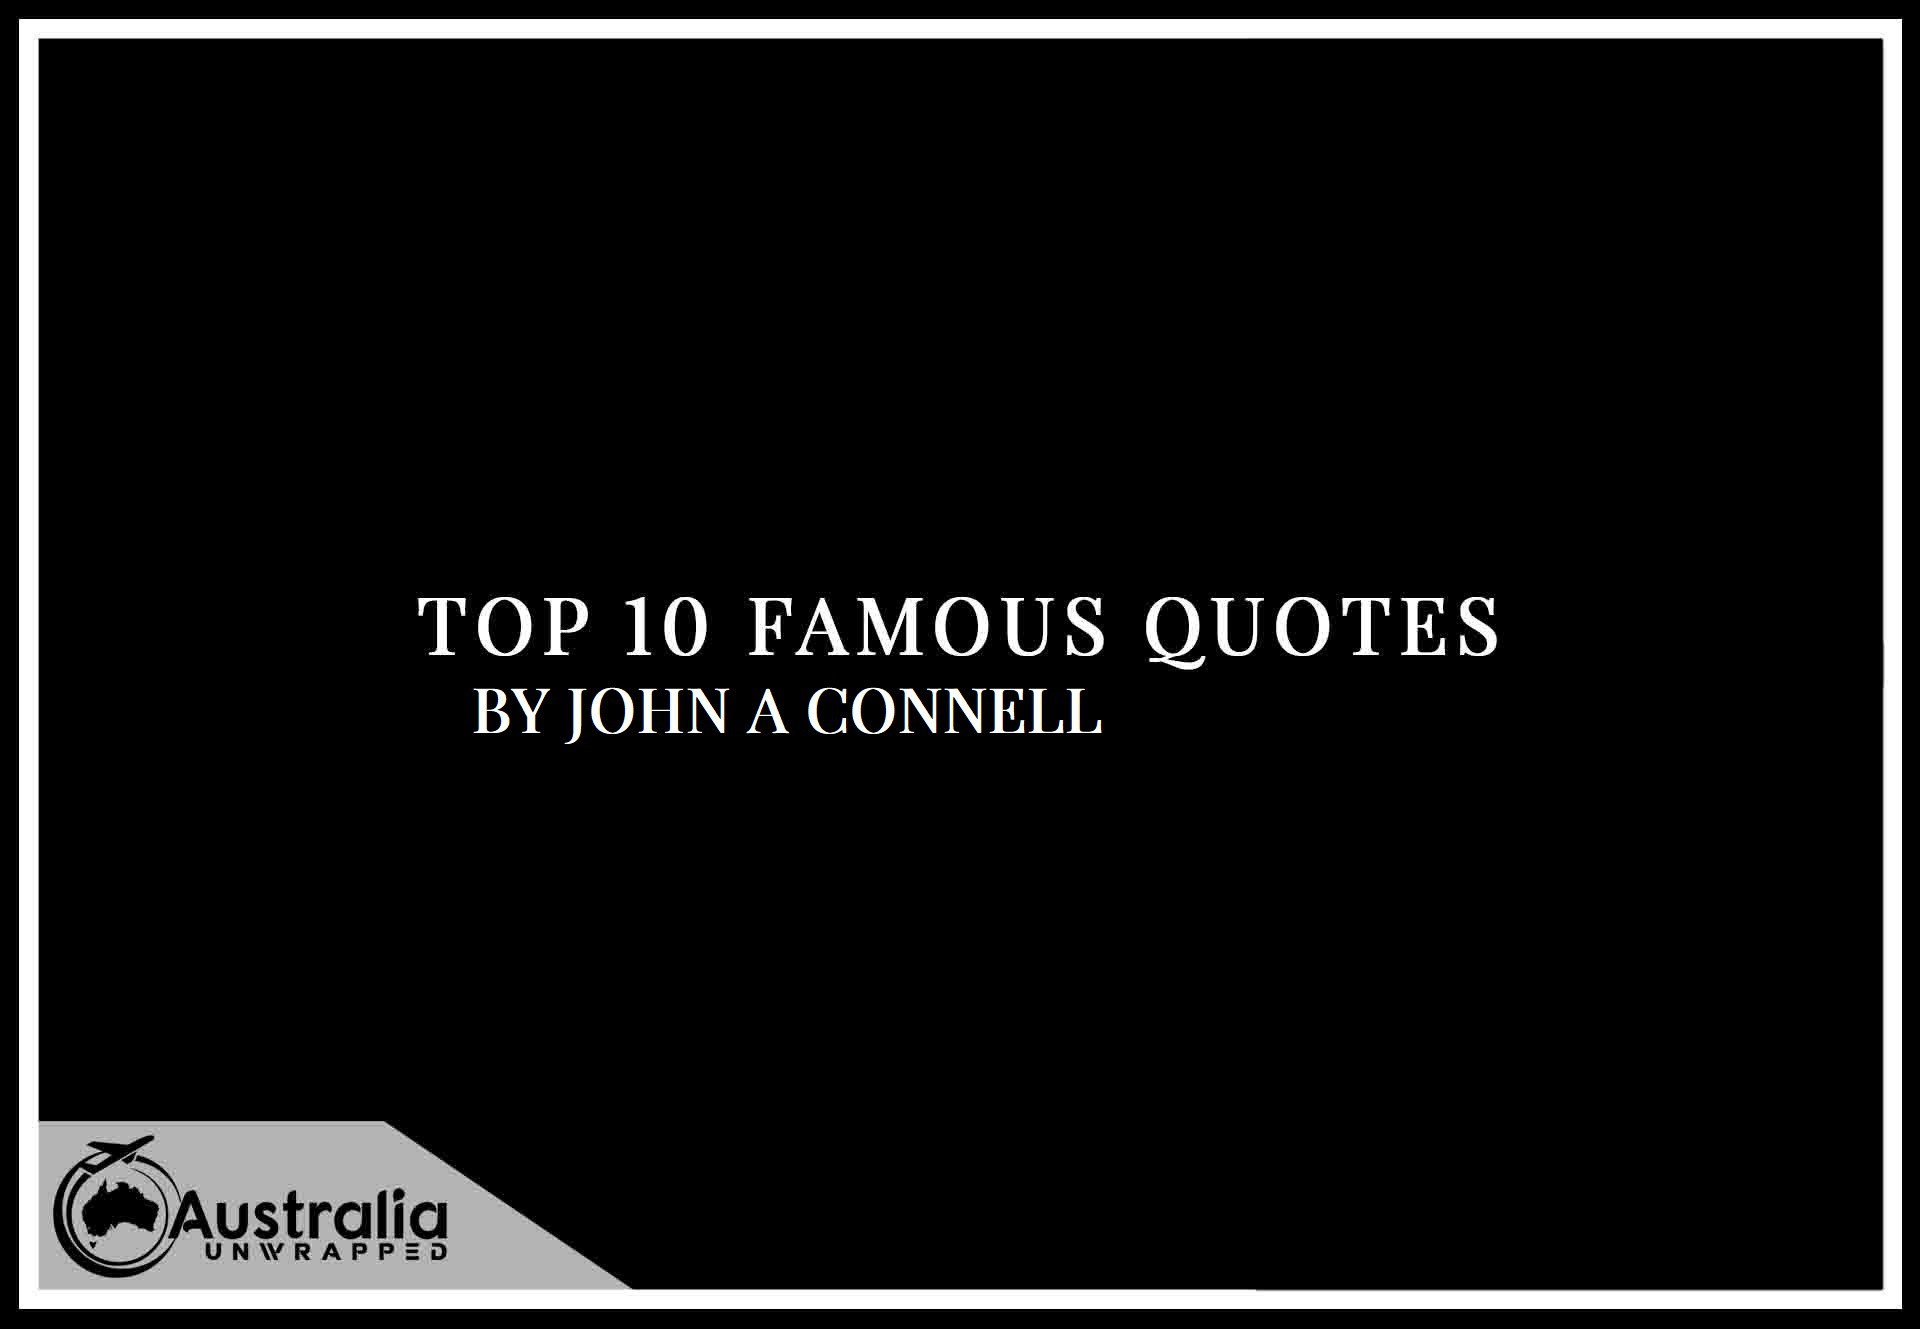 Top 10 Famous Quotes by Author John Connell